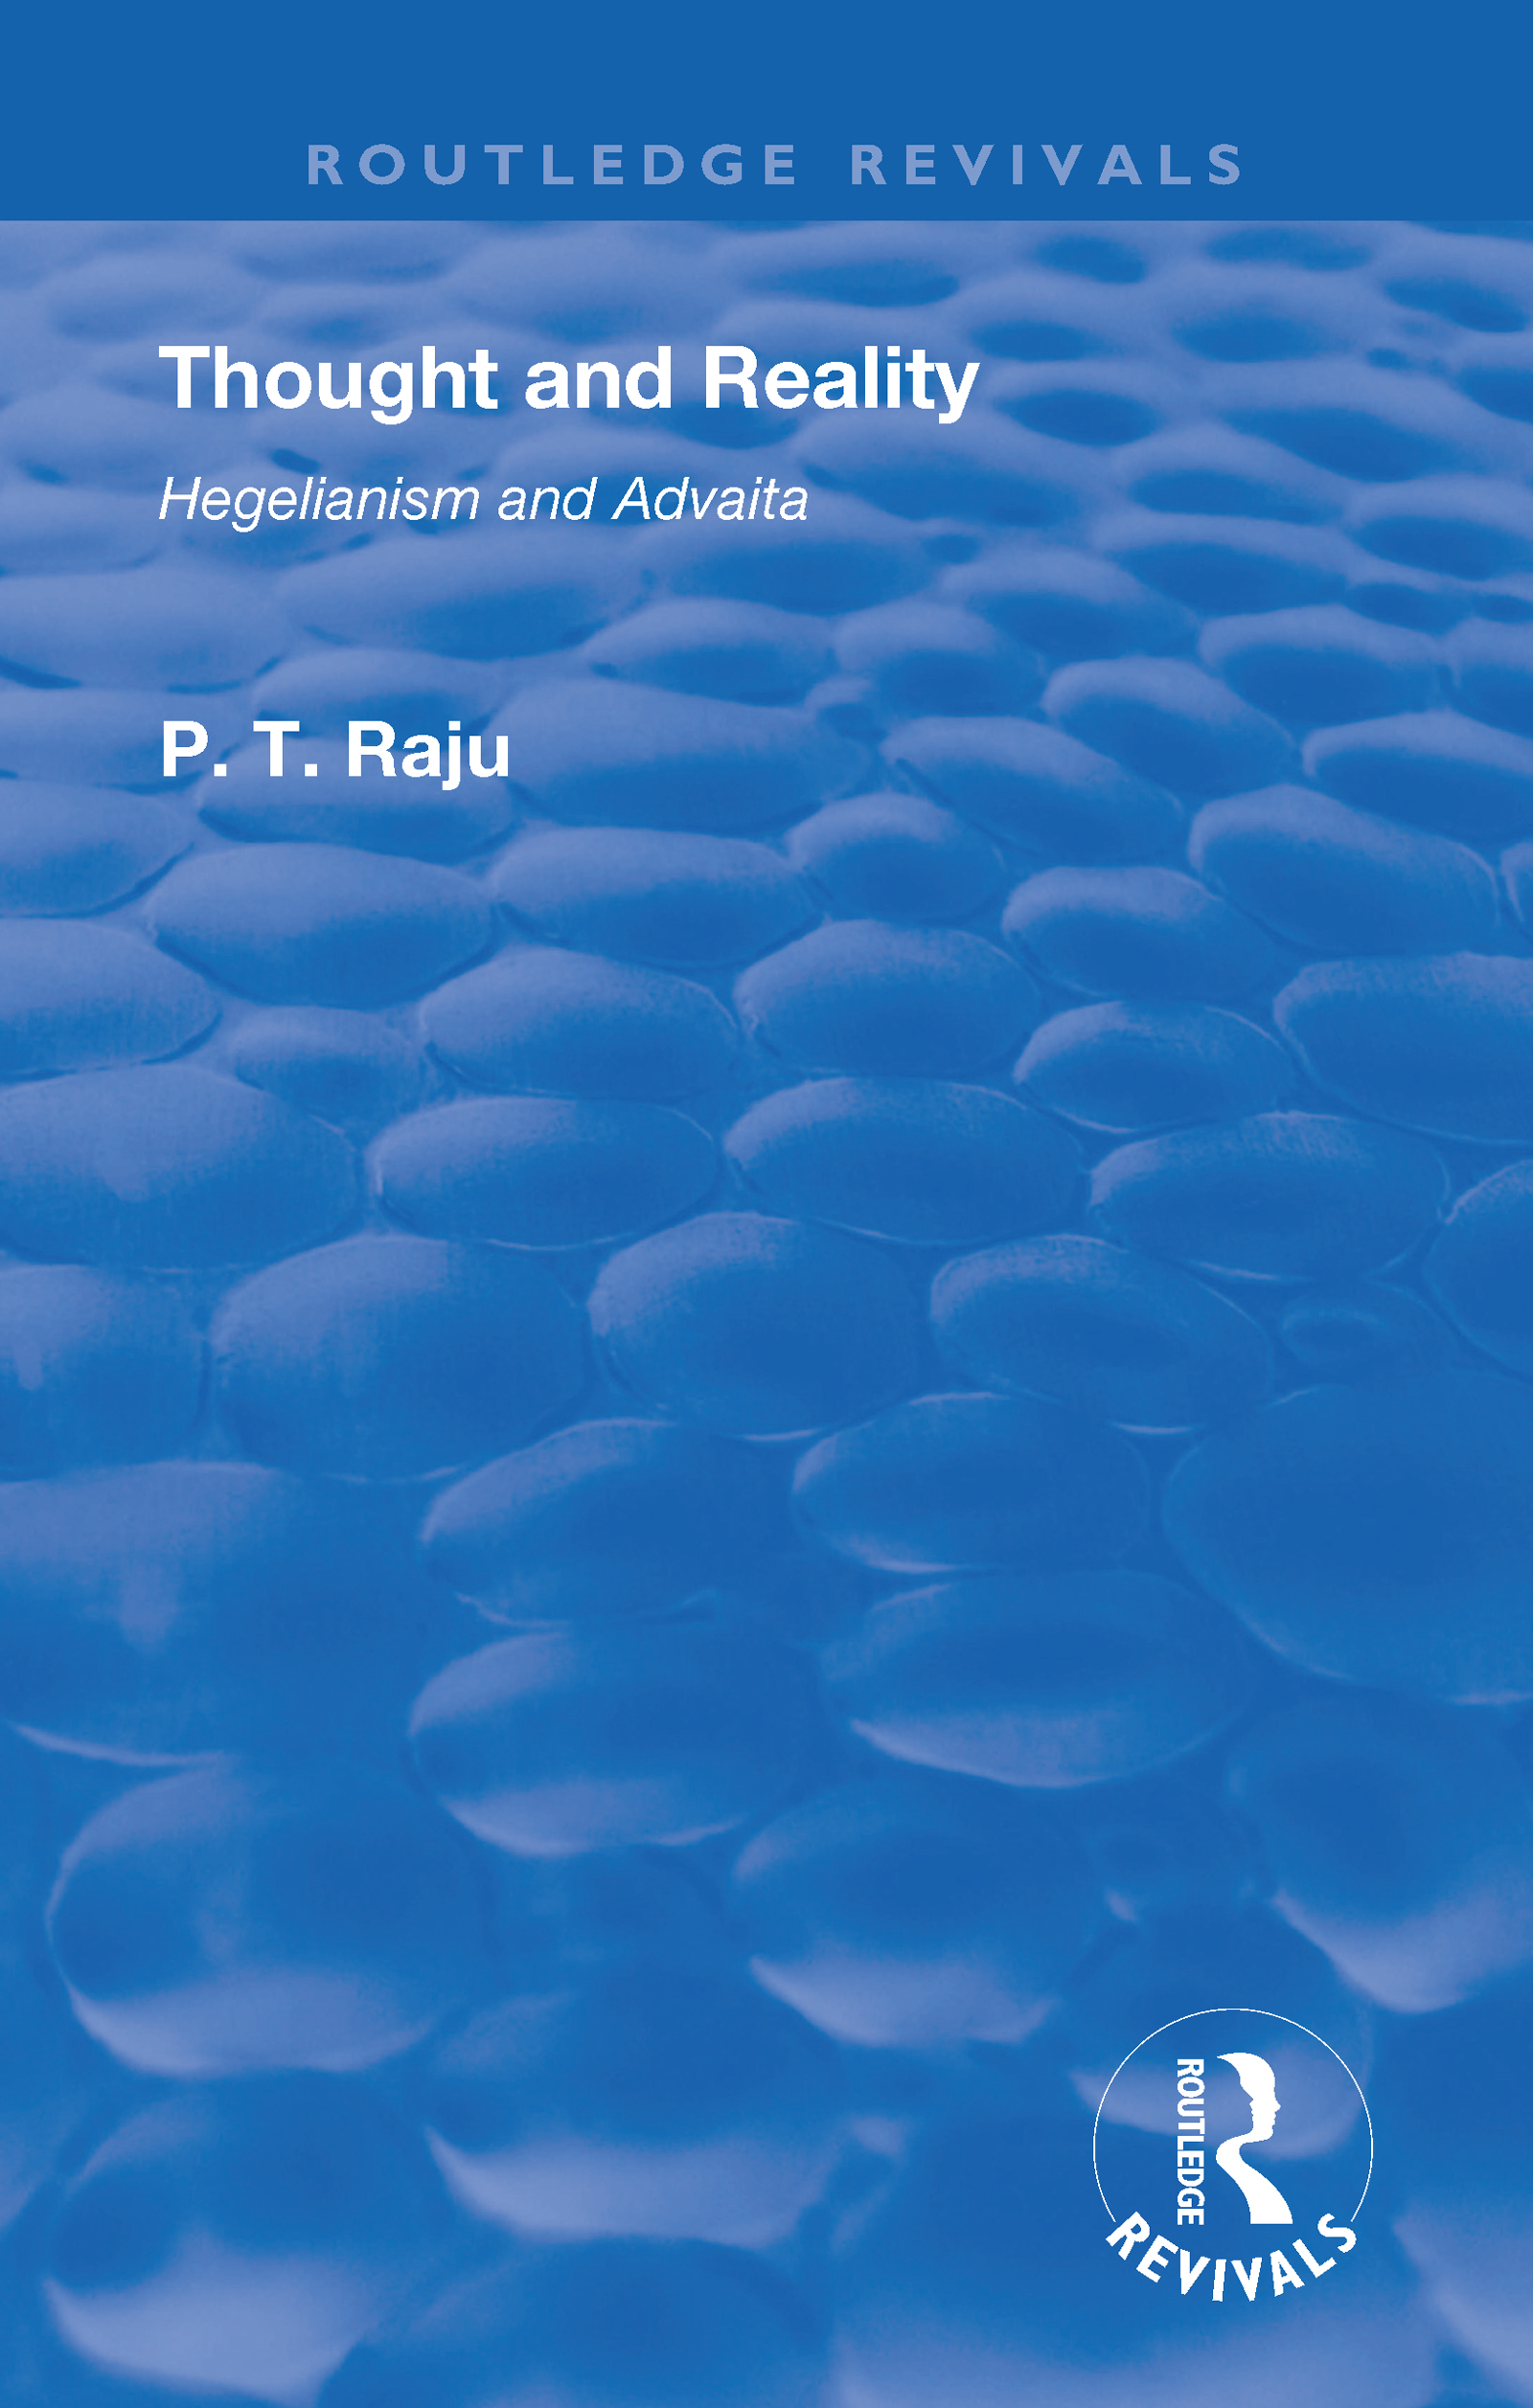 Revival: Thought and Reality - Hegelianism and Advaita (1937)